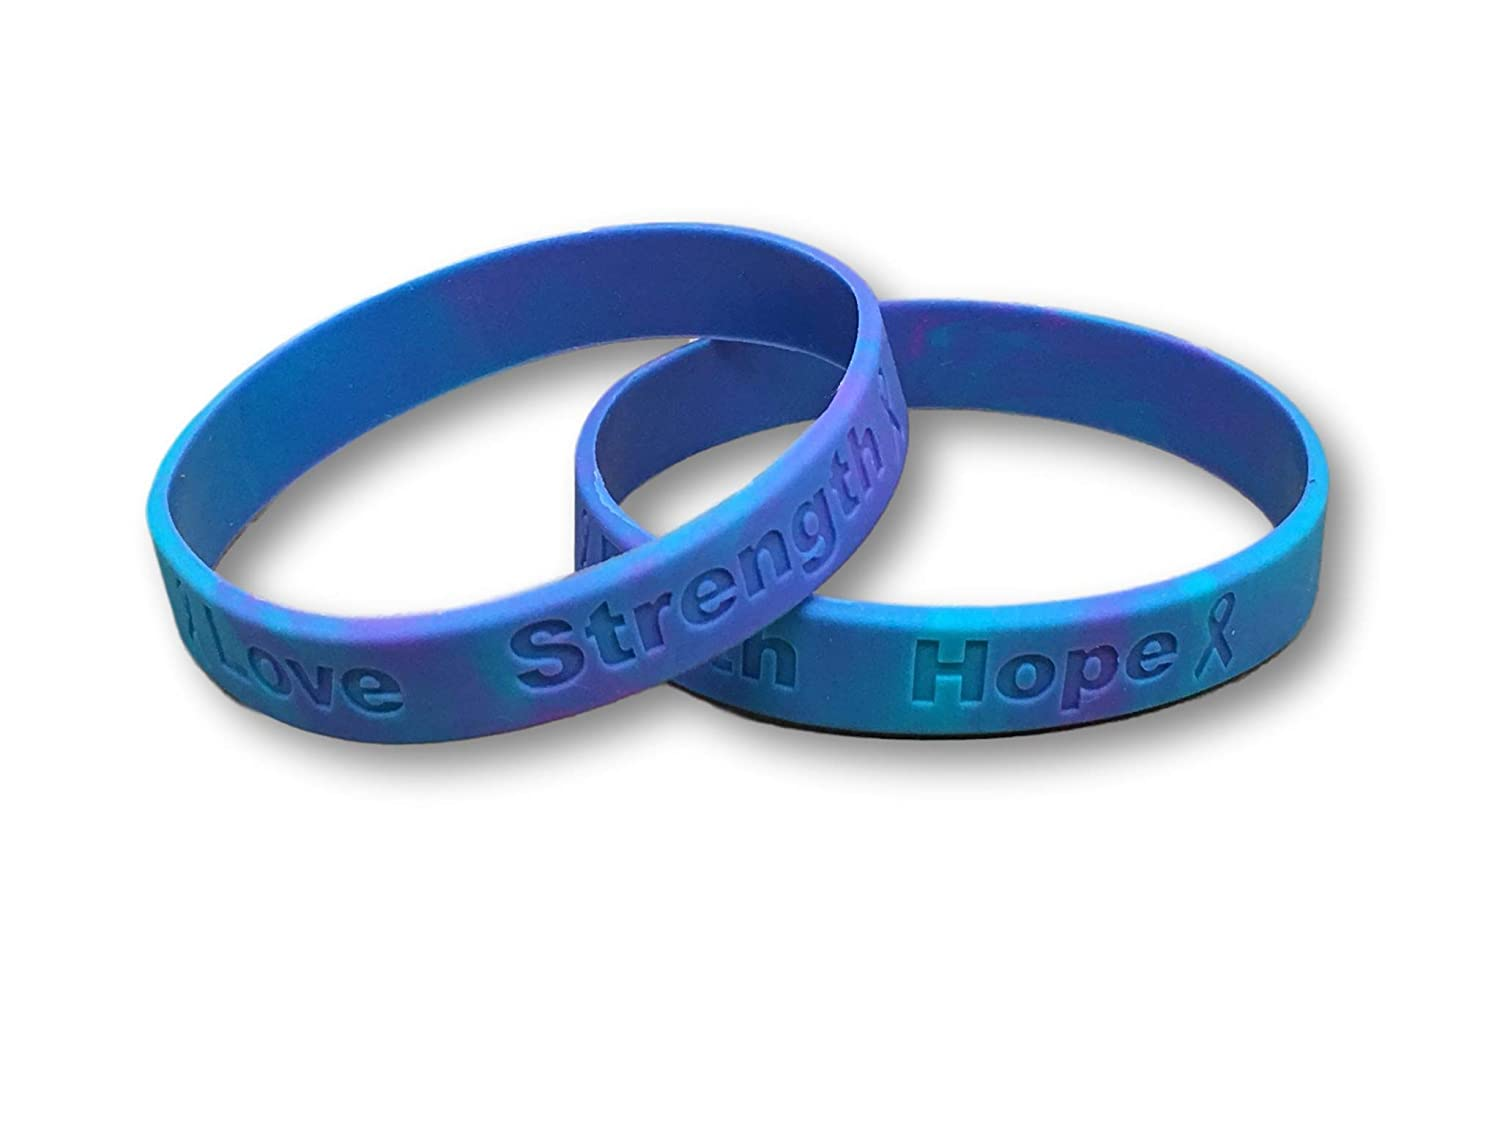 25 Sexual Assault Teal and Purple Silicone Awareness Bracelets Medical Grade Silicone Latex and Toxin Free 25 High Quality Bracelets